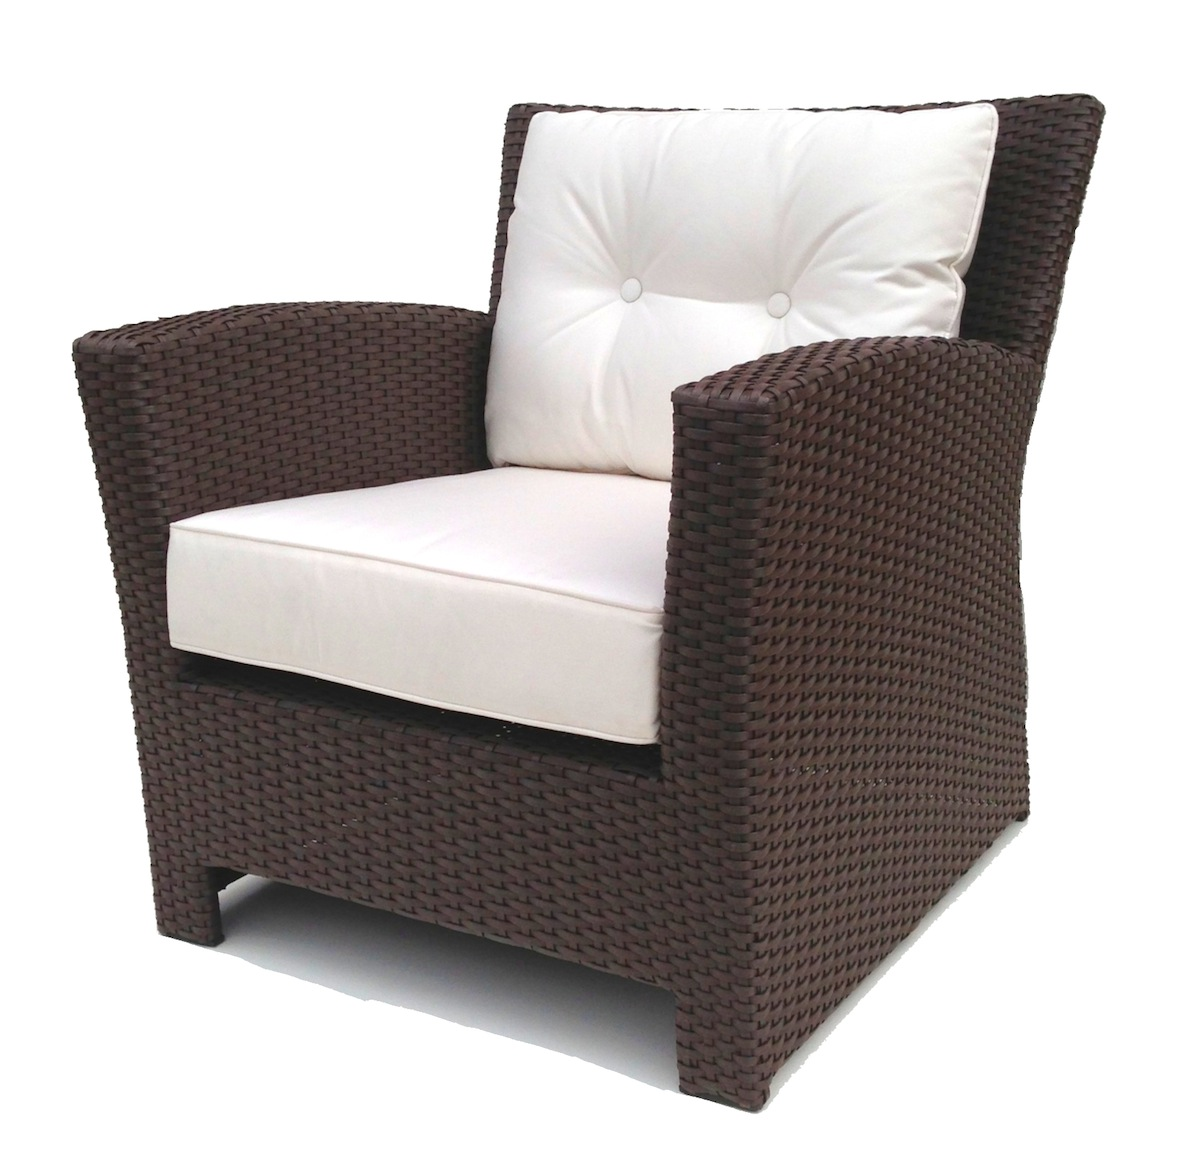 outdoor wicker chairs outdoor wicker club chair KPFGPNM